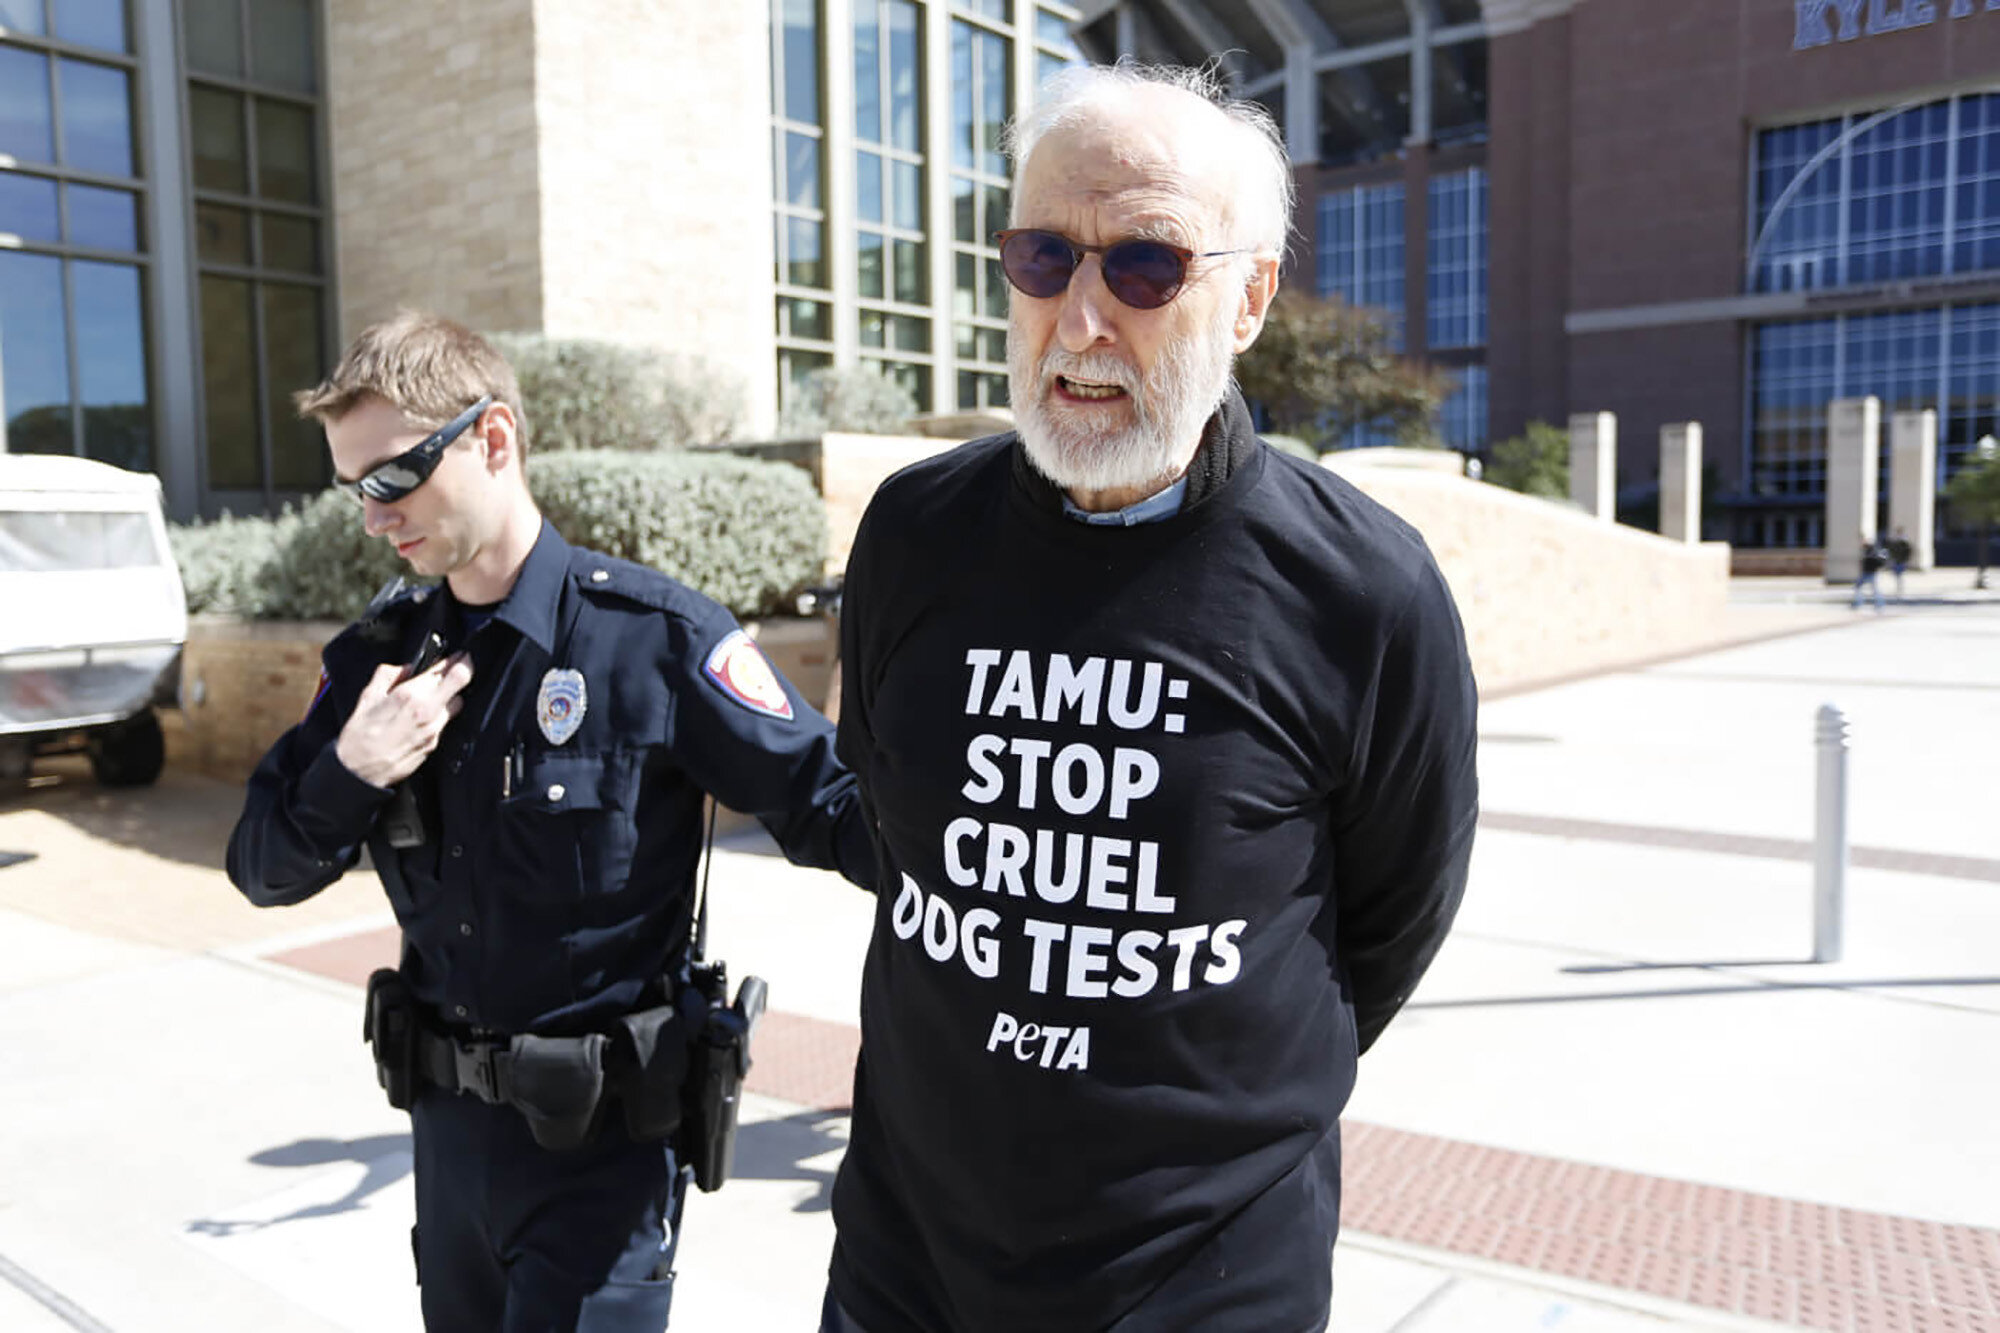 James Cromwell Arrested at Texas A&M University While Protesting Dog Lab Testing at the School - The Babe actor, 79, was arrested during a PETA protest at Texas A&M University's Board of Regents meeting while calling on the school to shut down its laboratory where golden retrievers and other dogs are part of medical research